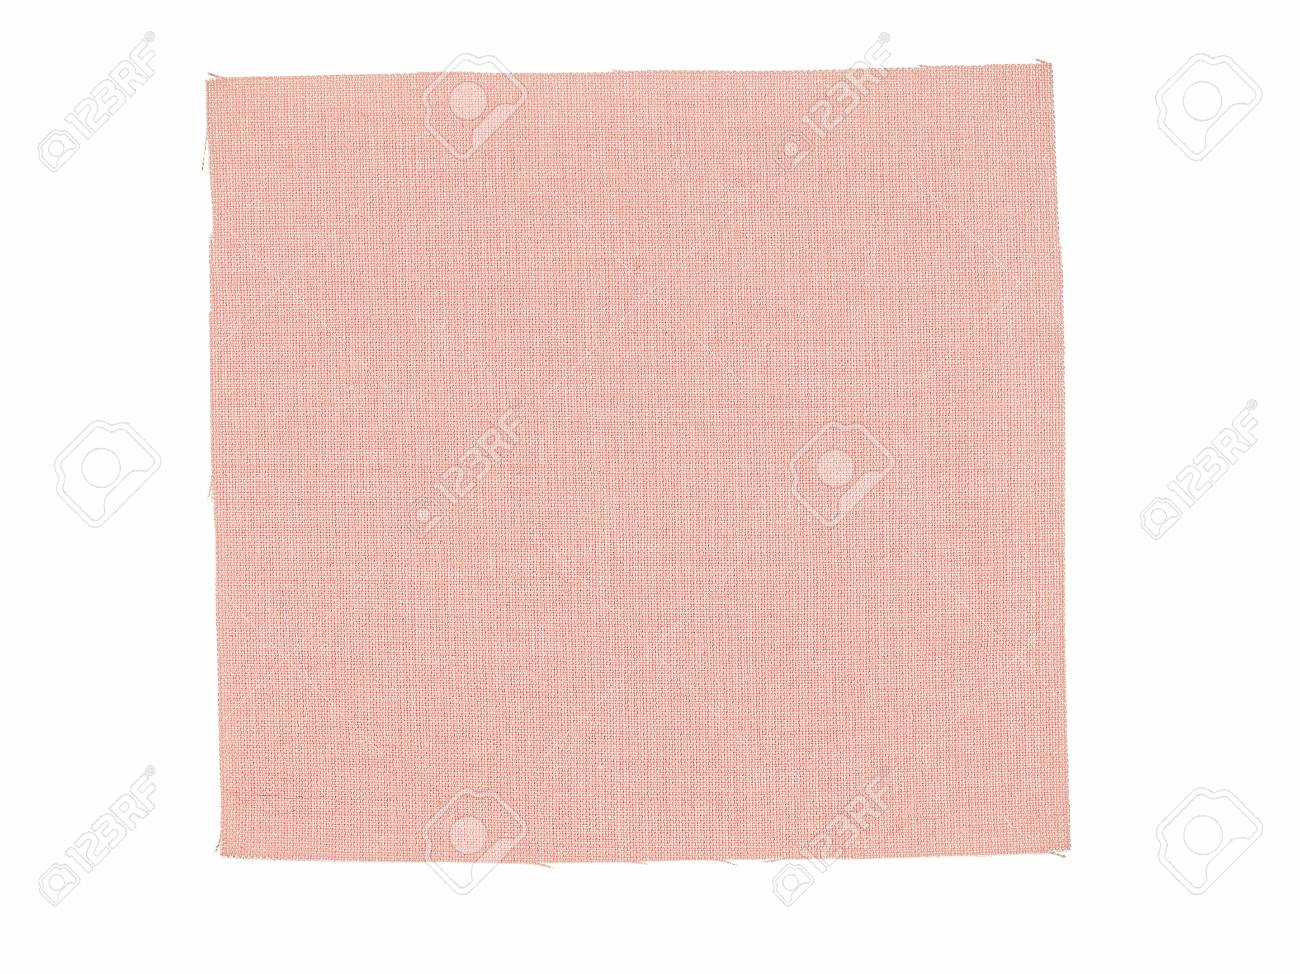 vintage looking pink fabric swatch over white background stock photo